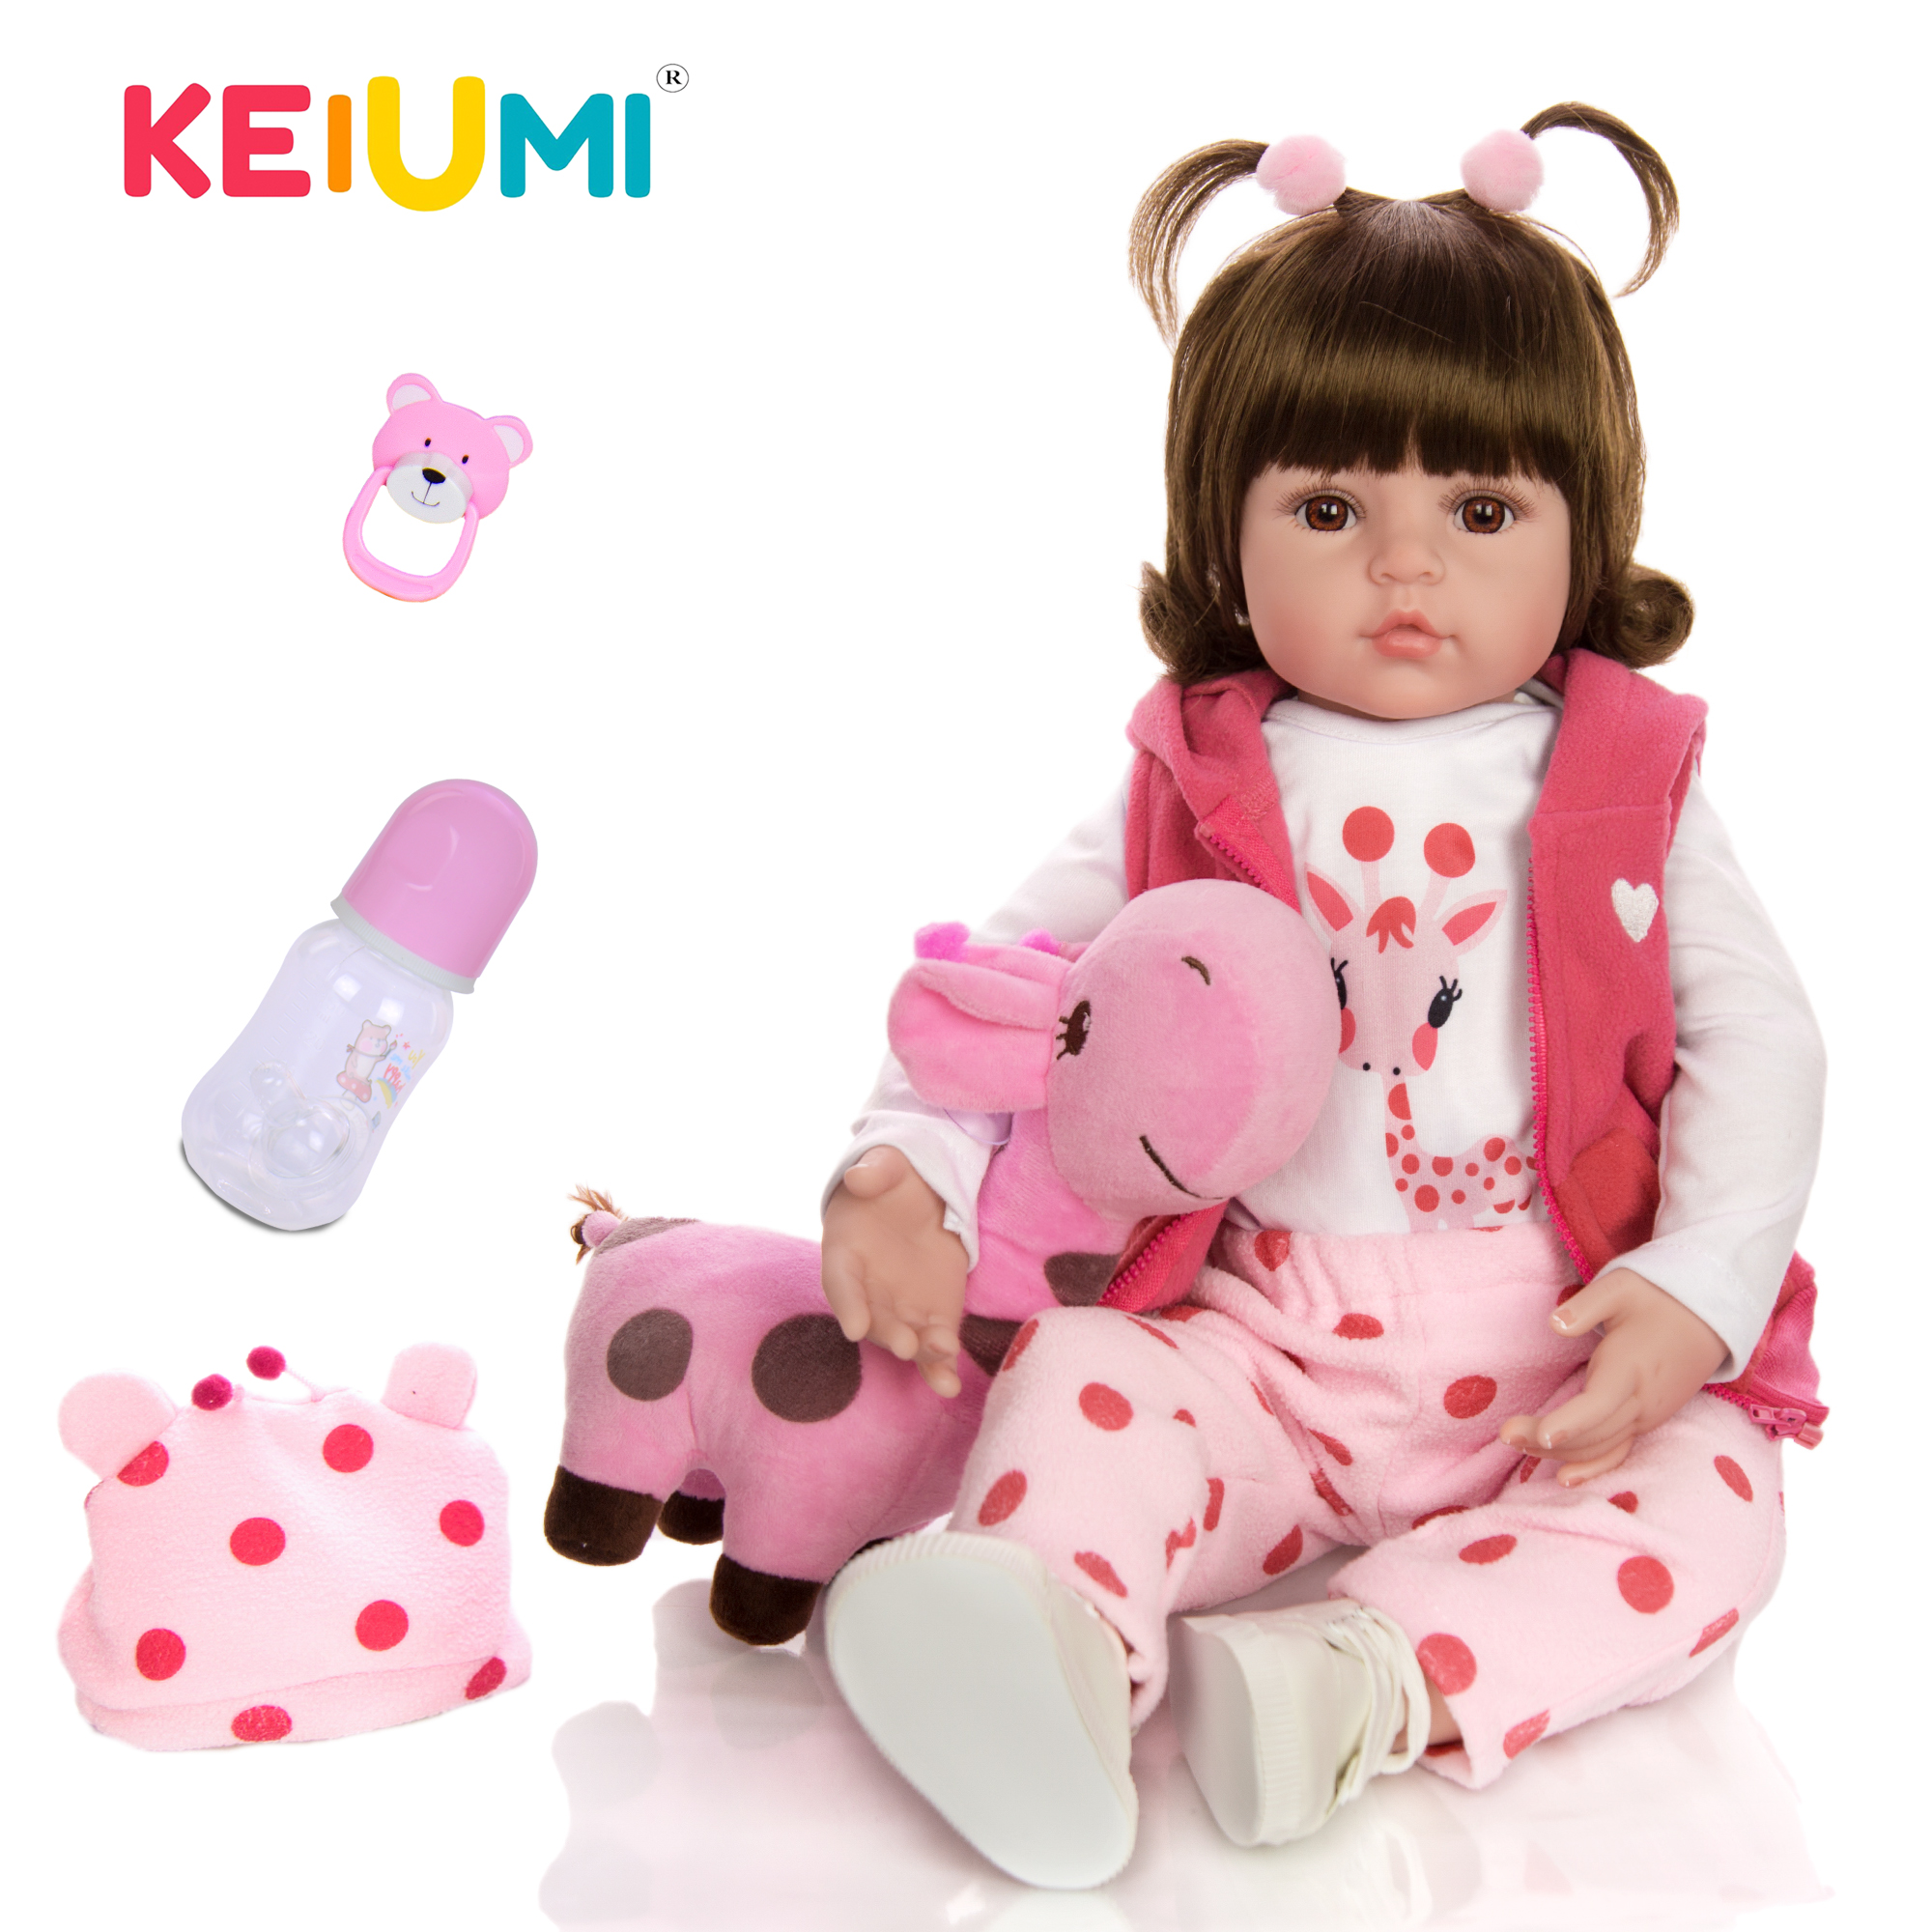 check out ce72d 0396d US $27.68 58% OFF|KEIUMI Hot Sale Reborn Baby Doll Toy Cloth Body Stuffed  Realistic Baby Doll With Giraffe Toddler Birthday Christmas Gifts-in Dolls  ...